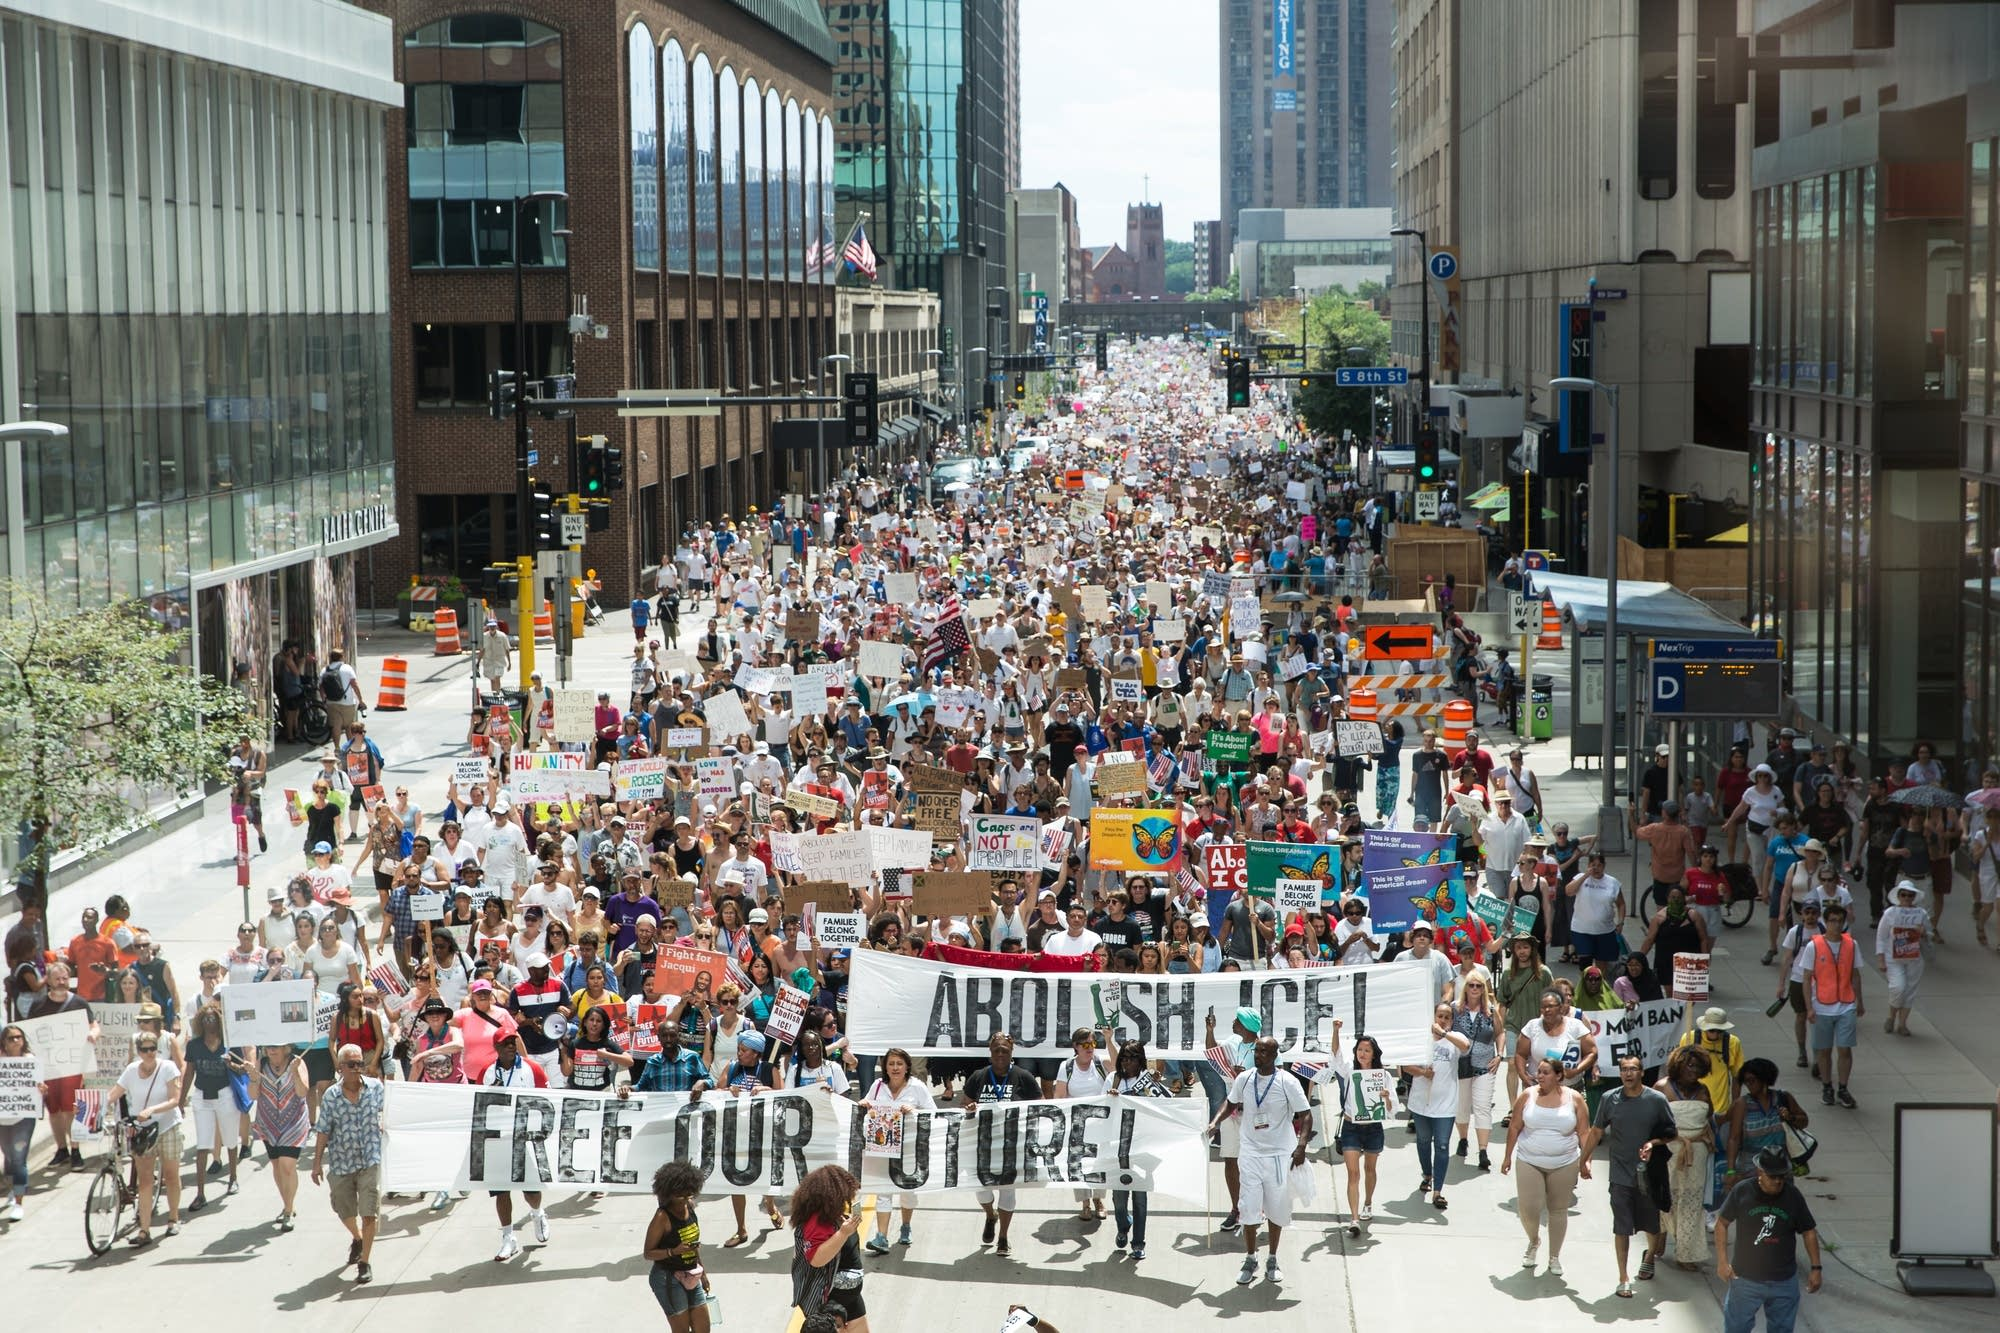 Thousands of protesters make their way down the streets of Minneapolis.